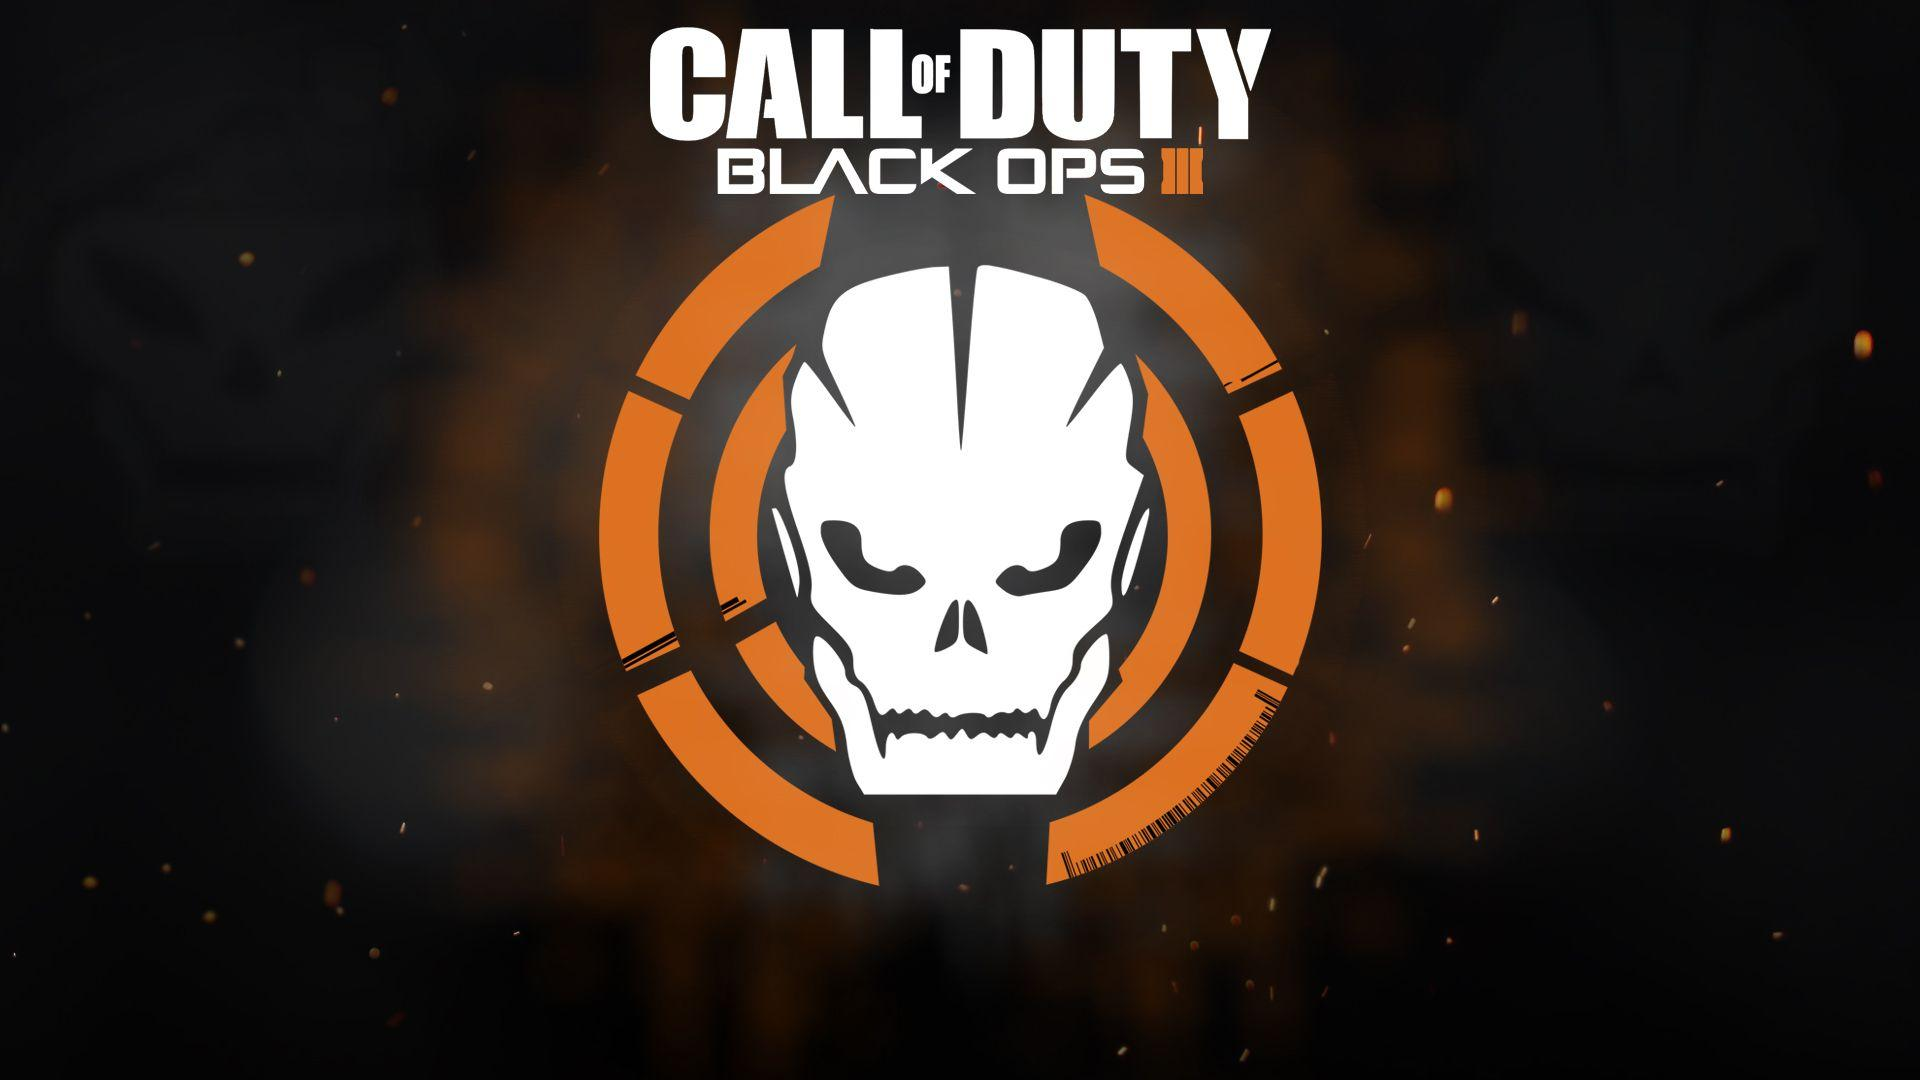 Call Of Duty Black Ops 3 Wallpaper Full HD - Mytwiink.com